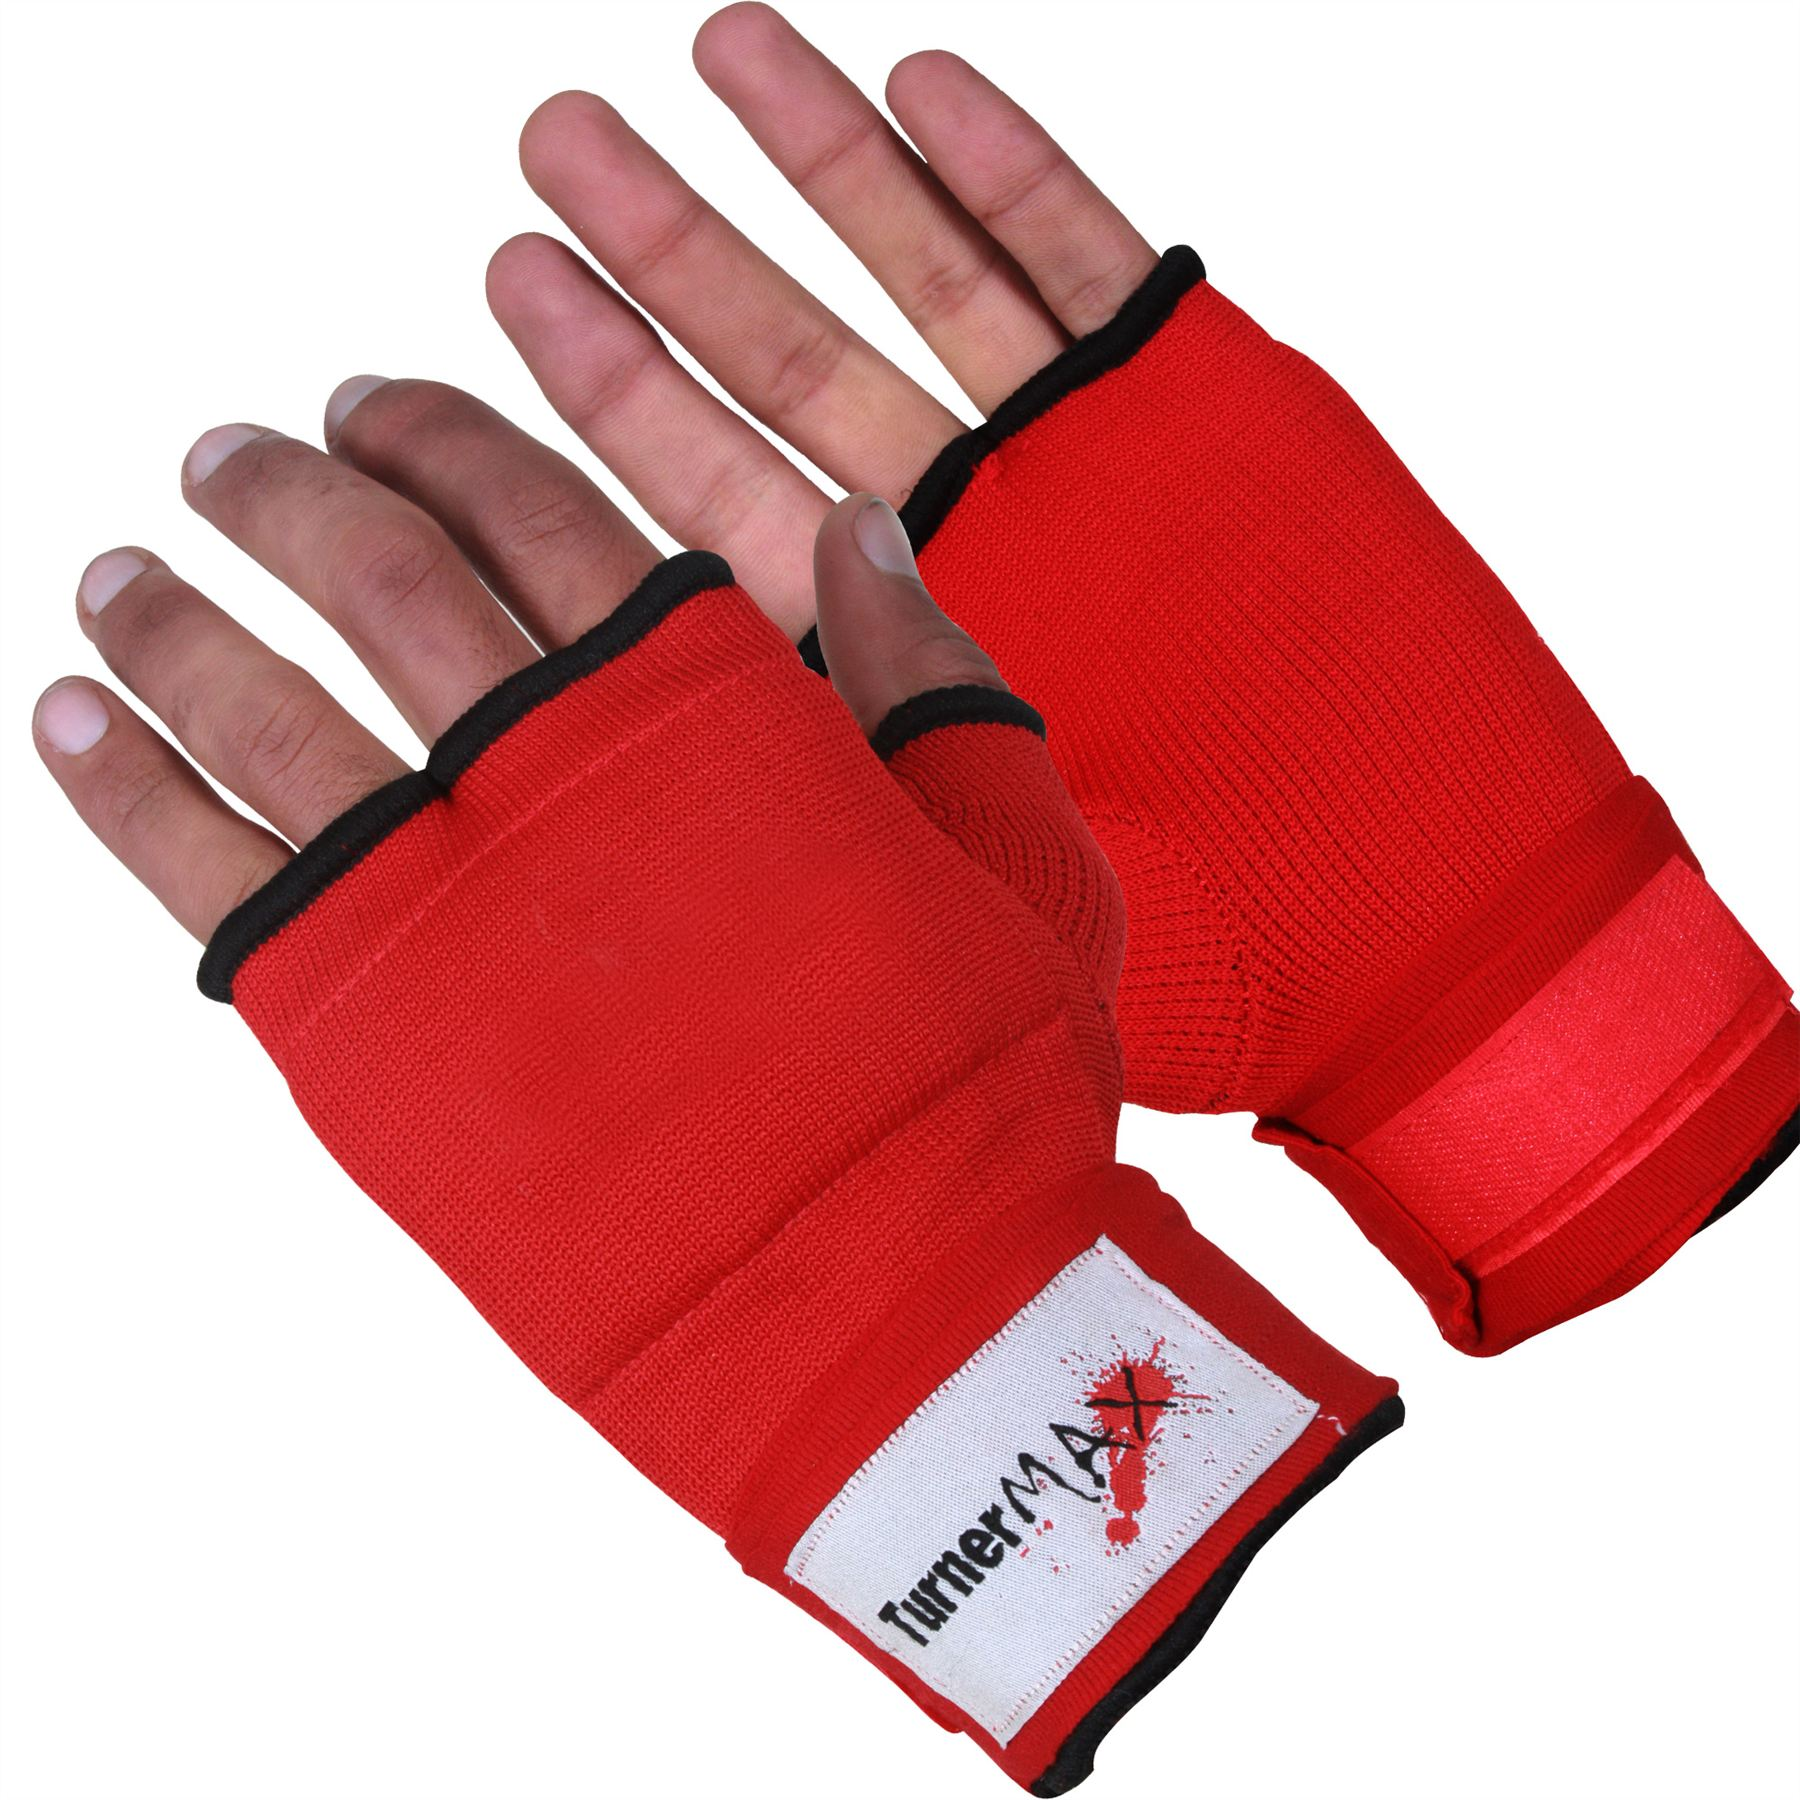 Fitness Inner Gloves: TurnerMAX Cotton Muay Thai Inner Gloves Boxing Training